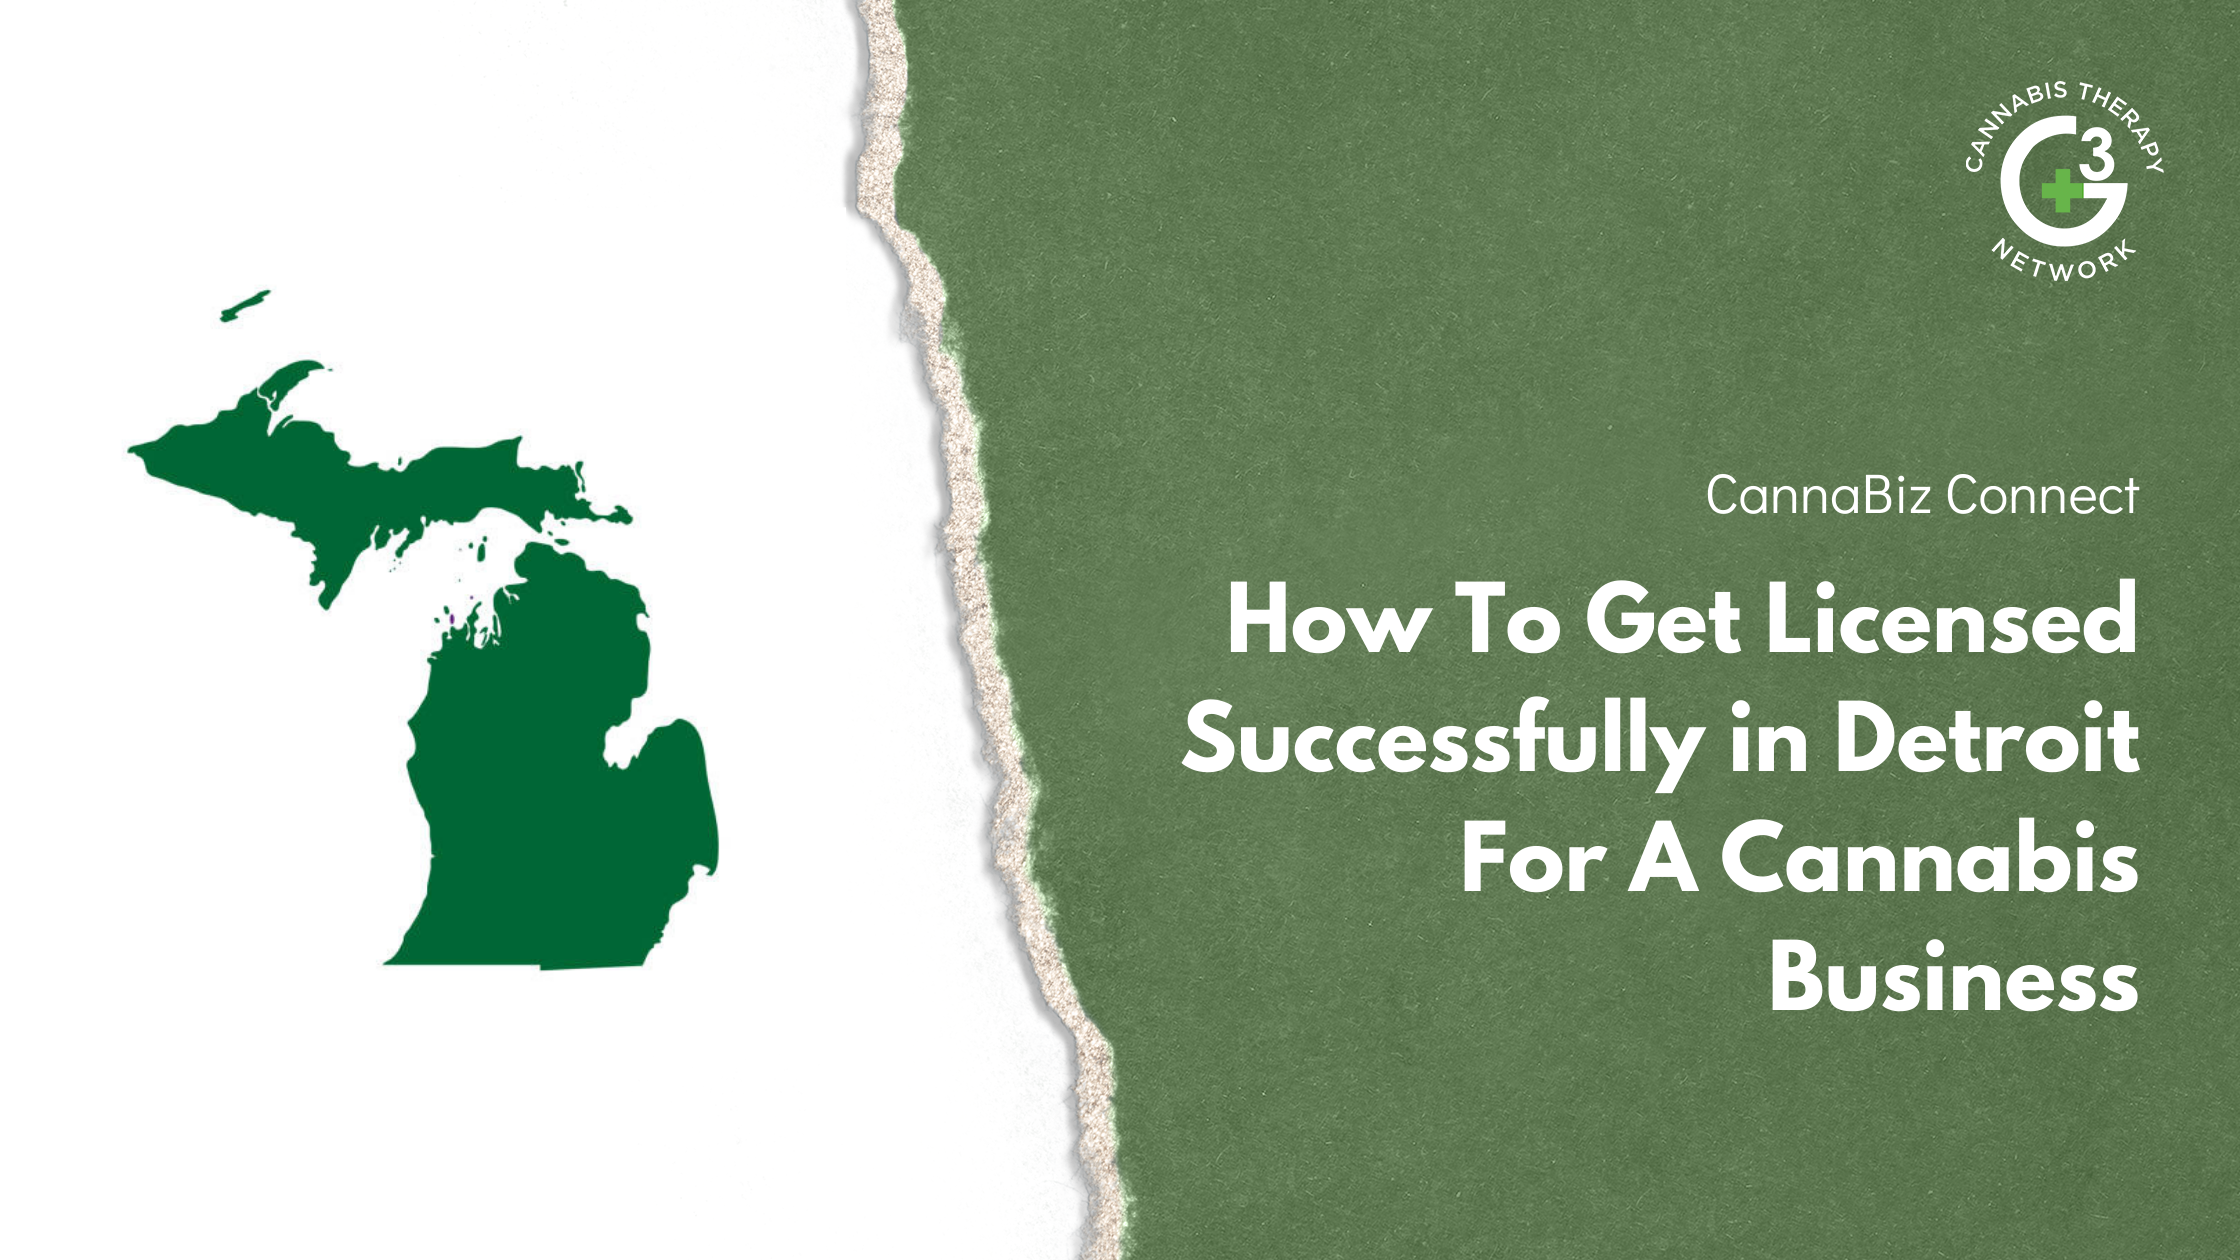 How To Get Licensed Successfully in Detroit For A Cannabis Business